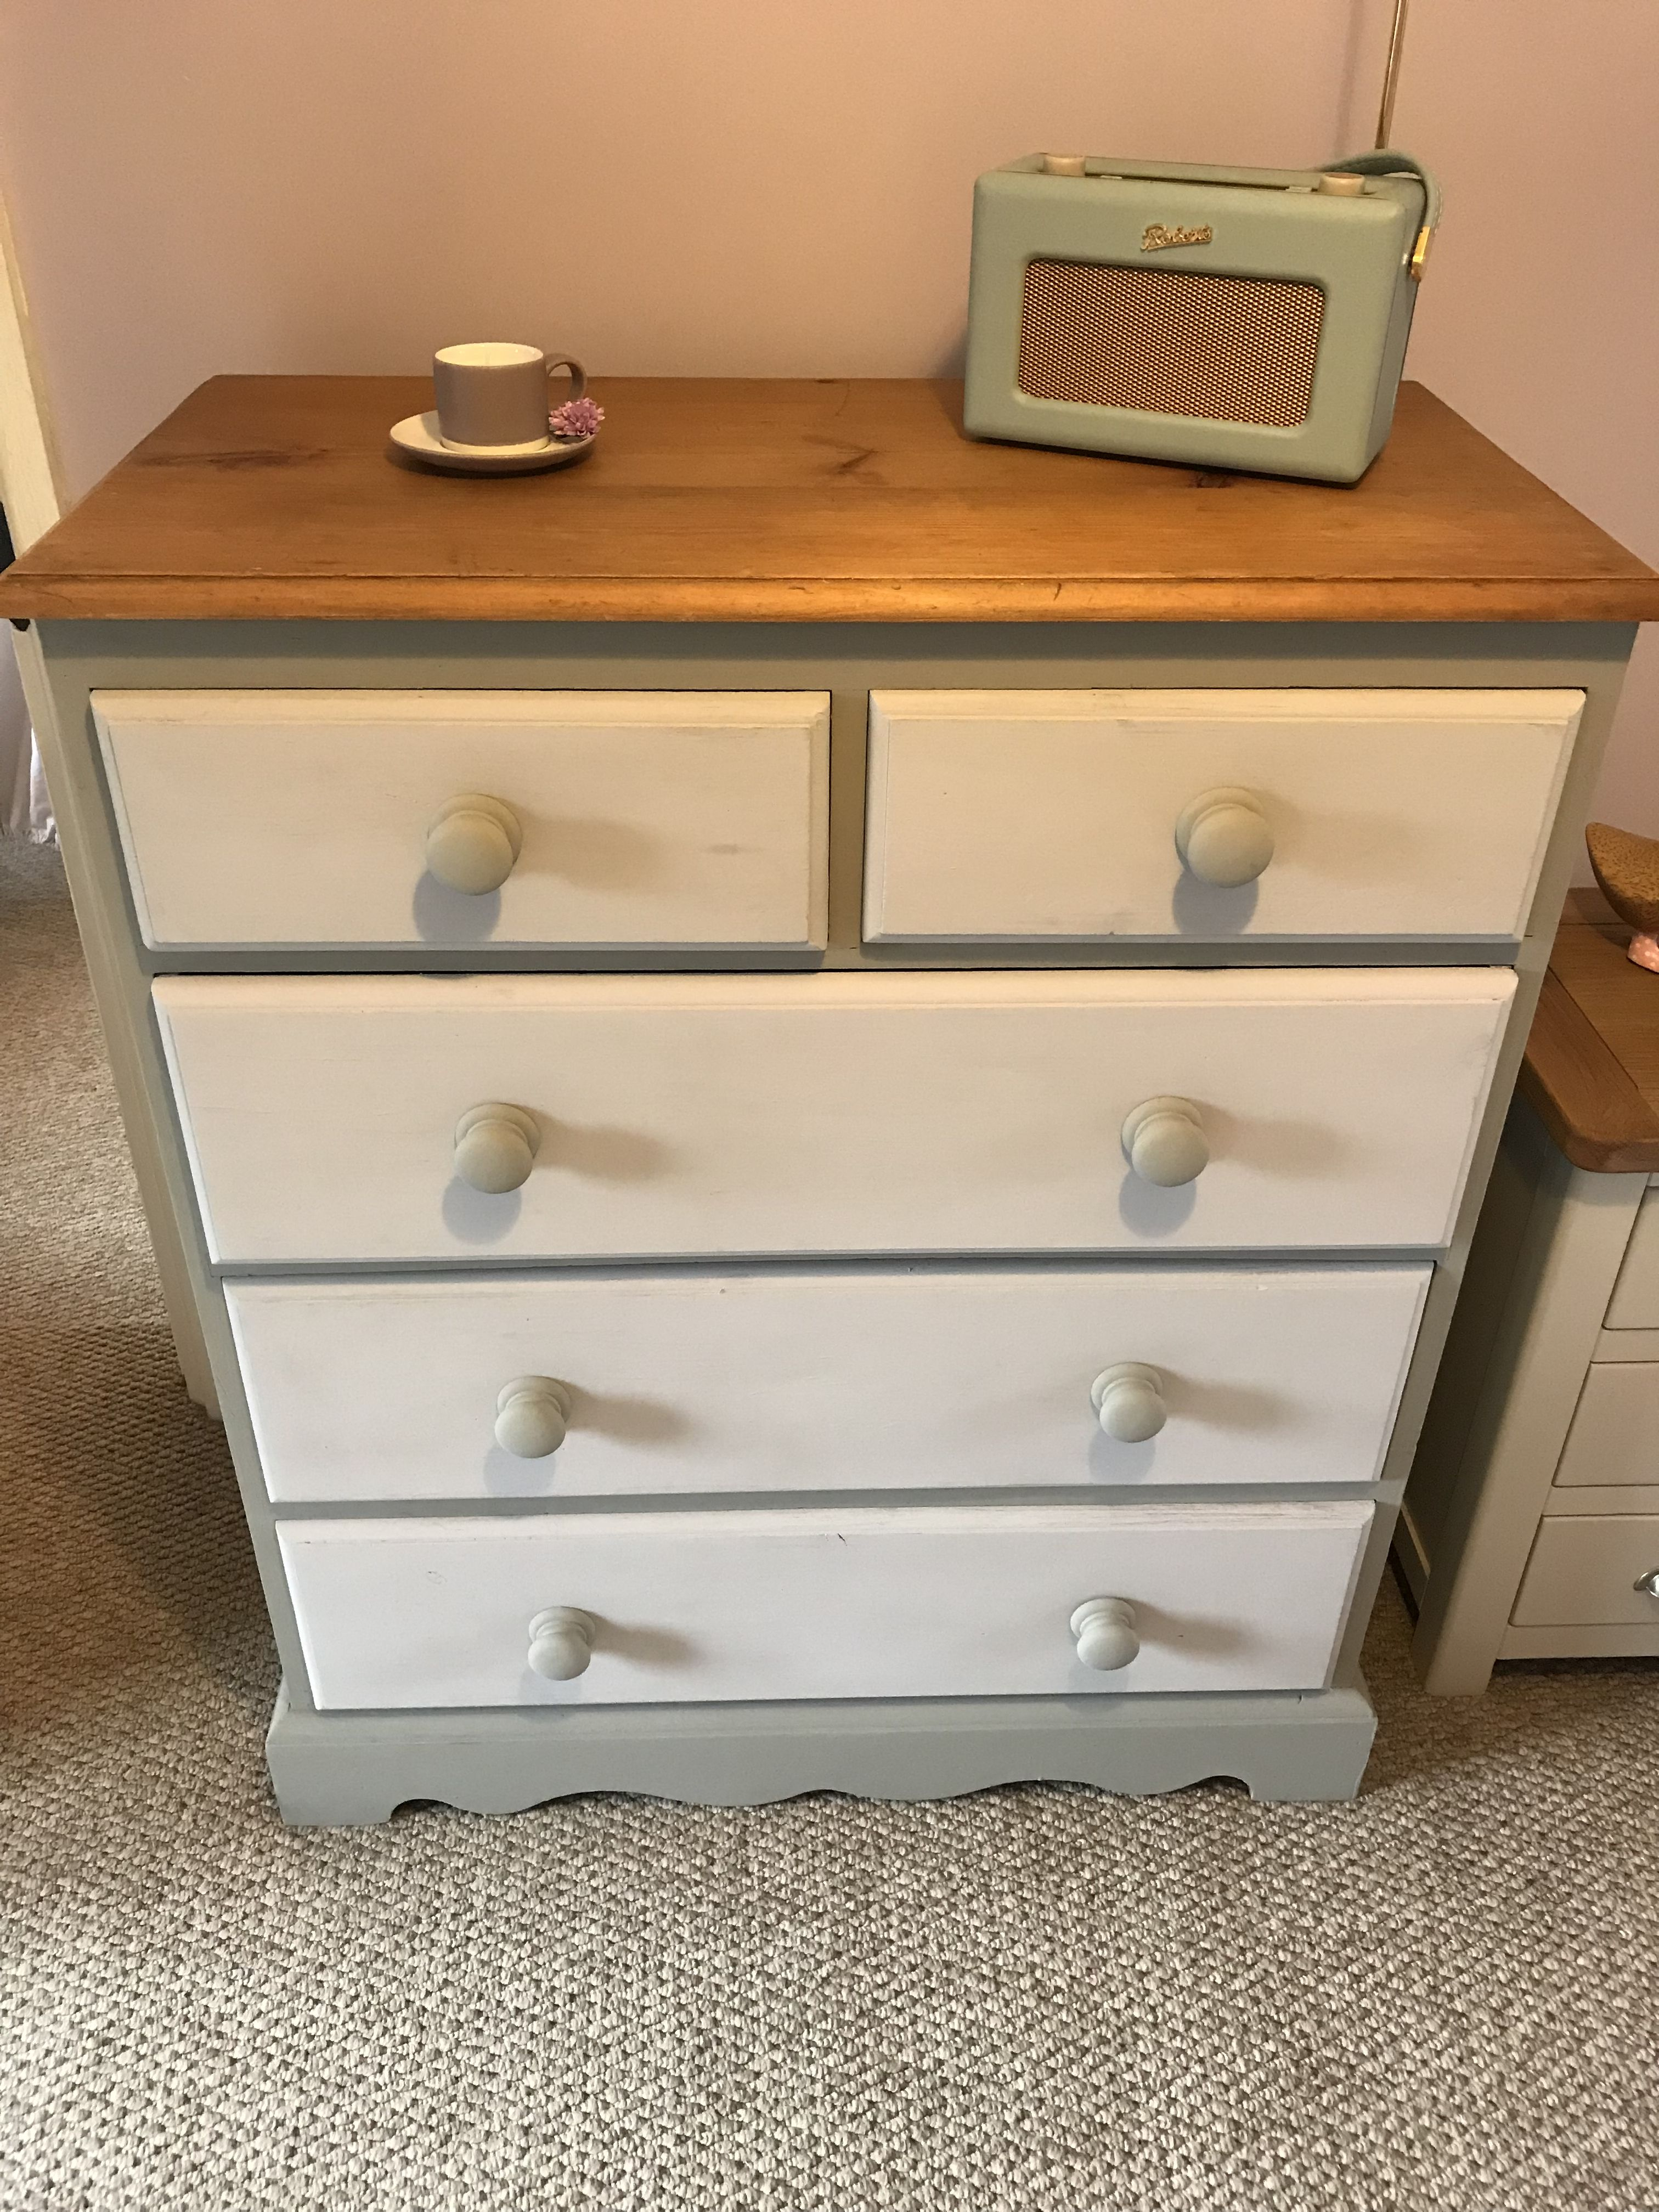 Upcycled Chest Of Drawers Annie Sloan Chalk Paint Chest Of Drawers Makeover Chest Of Drawers Upcycle Chest Of Drawers